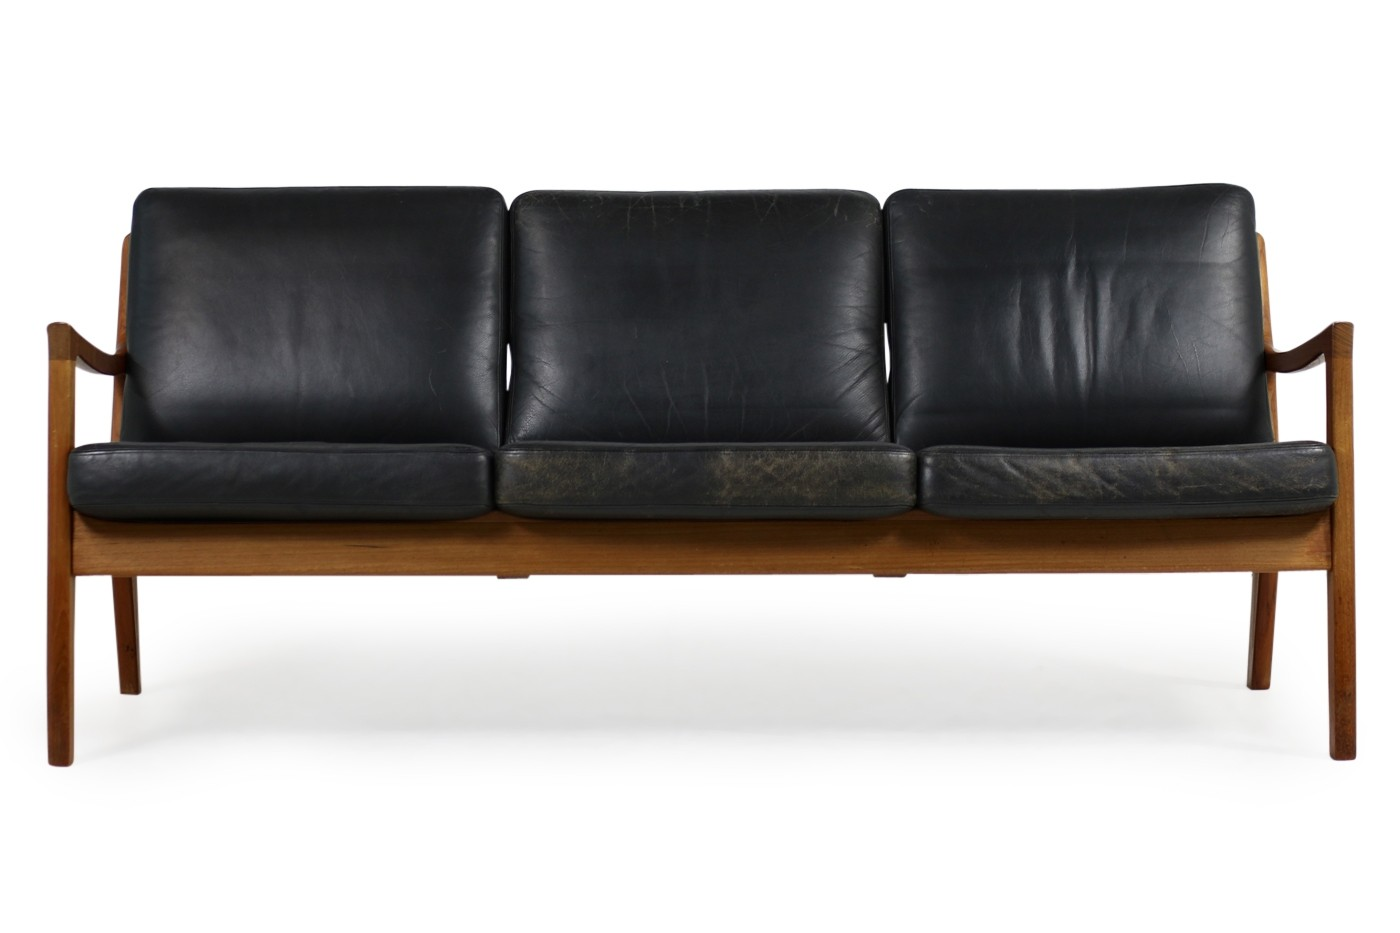 1960s danish modern vintage sofa by ole wanscher in teak for Sofa ankauf